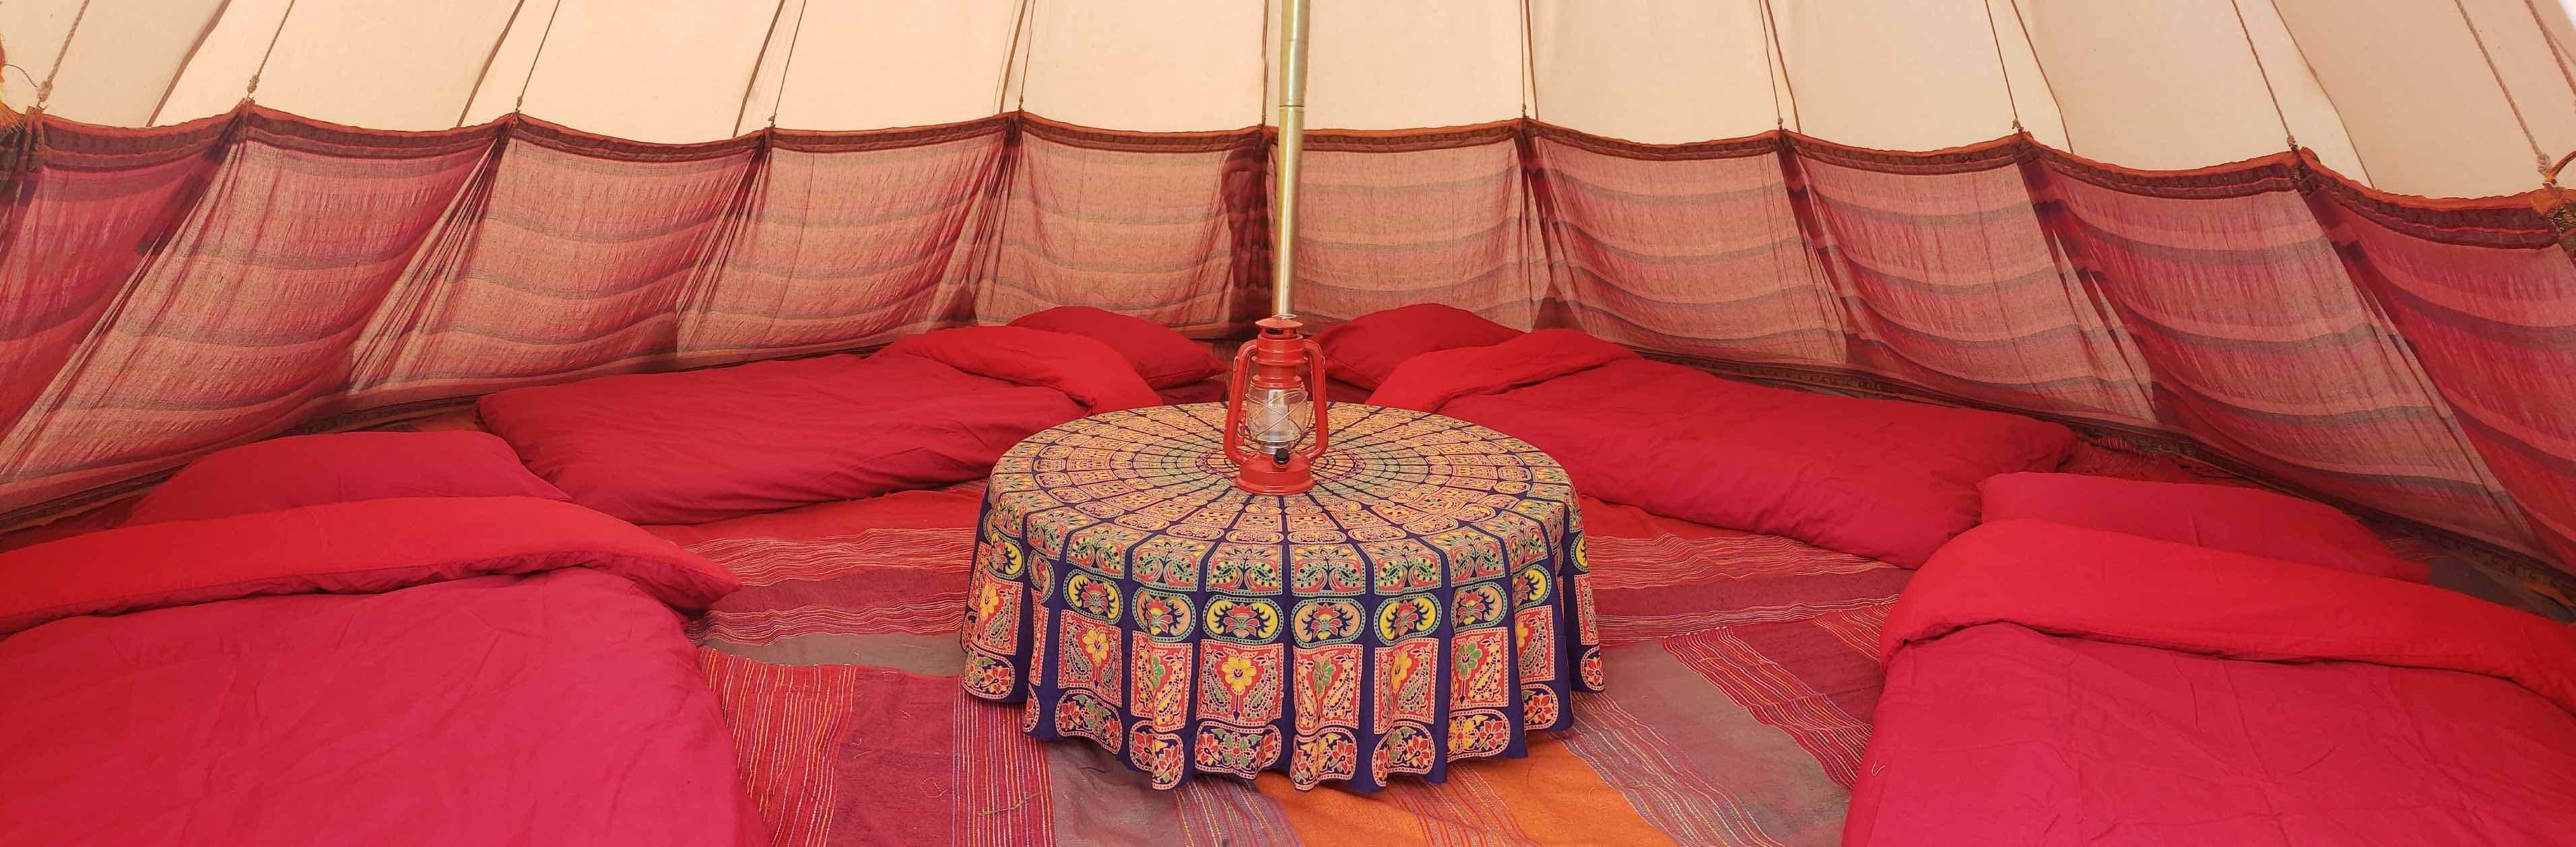 Tipi Tents (sleeps 2 - 5)